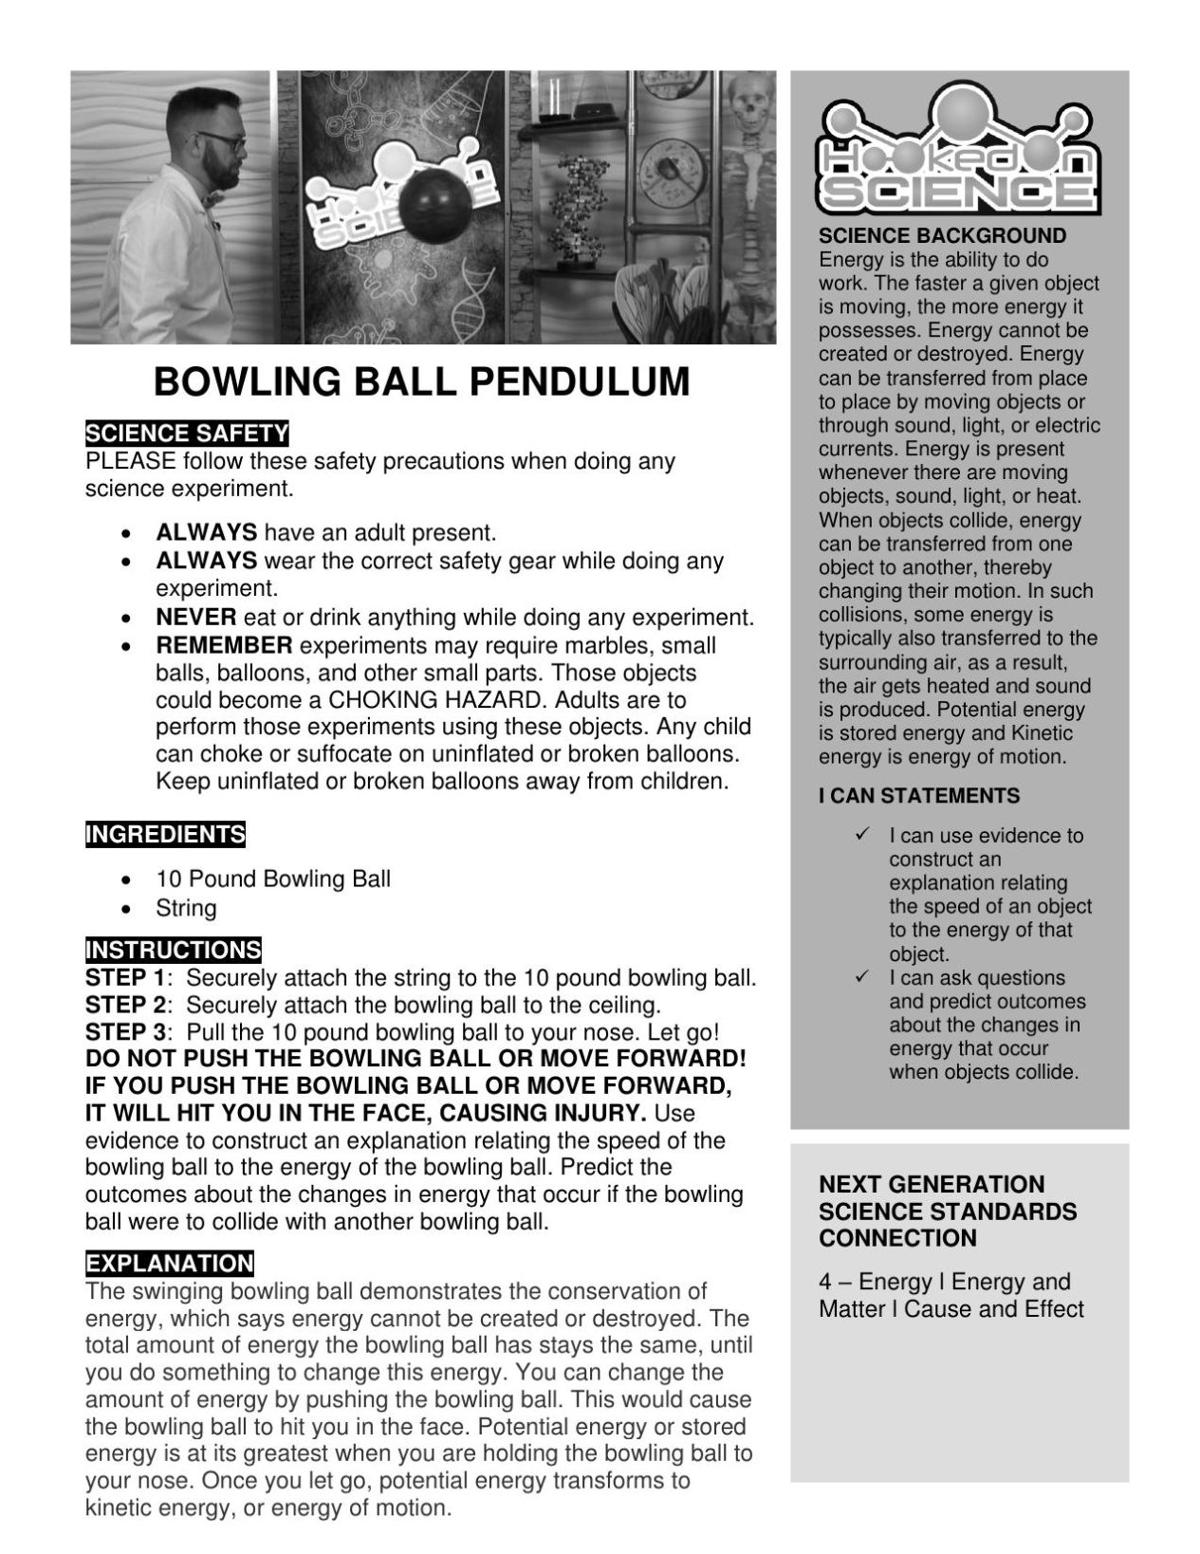 Hooked on Science: Bowling ball pendulum